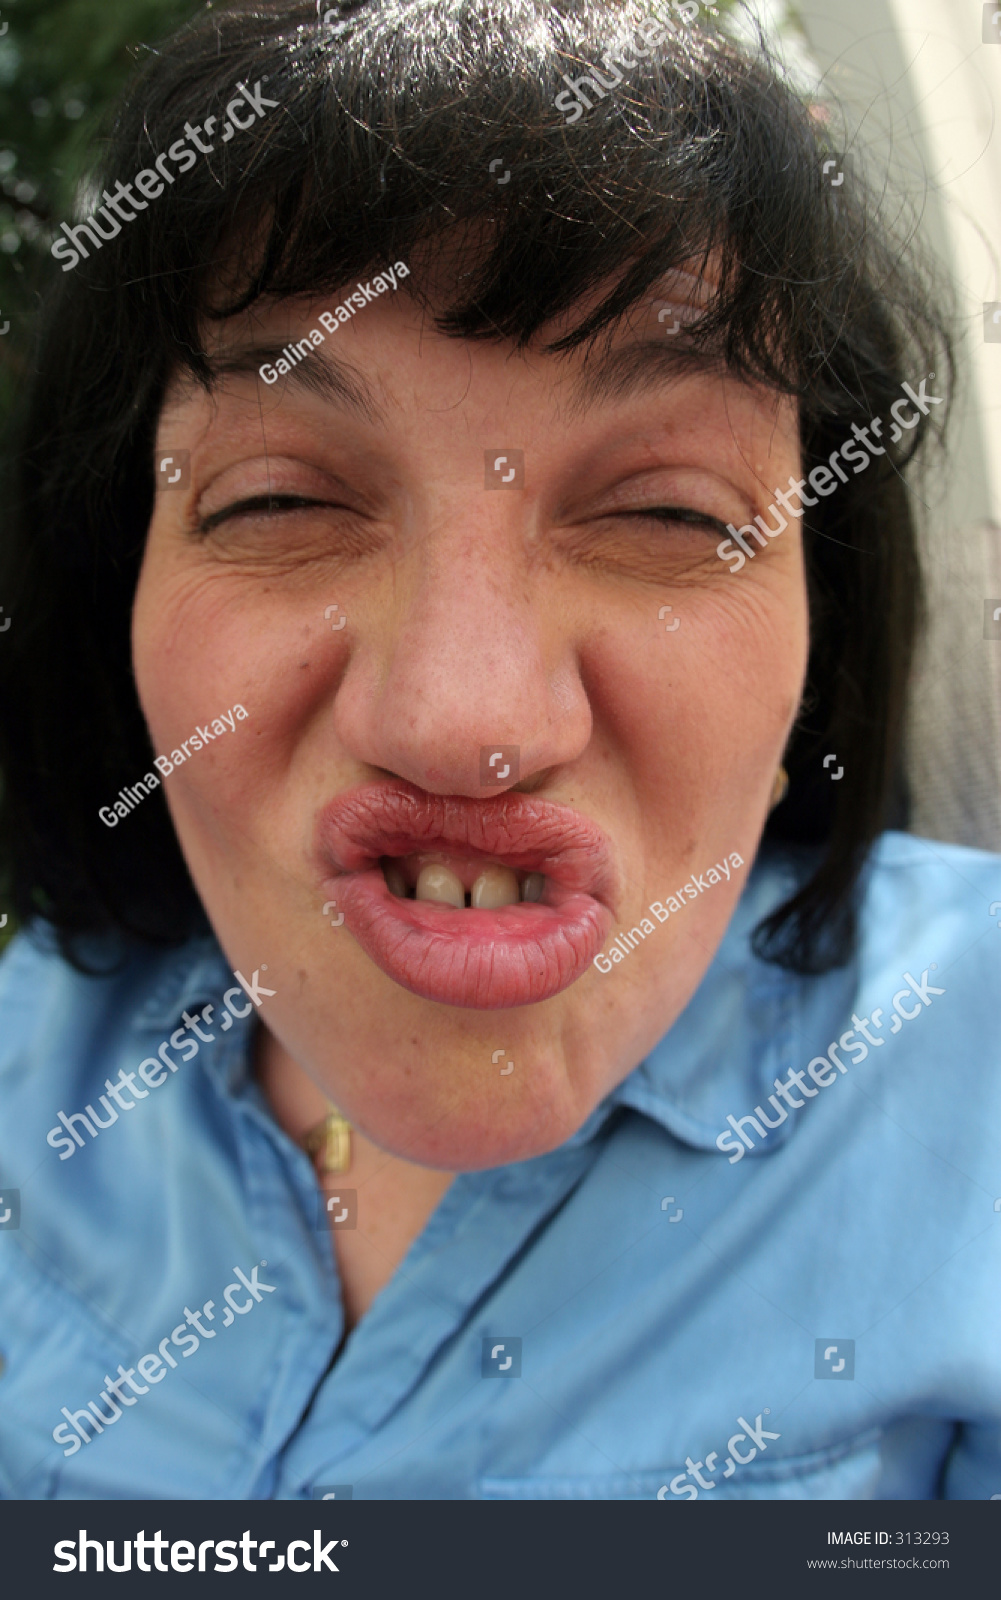 Woman Ugly Face Stock Photo 313293 - Shutterstock